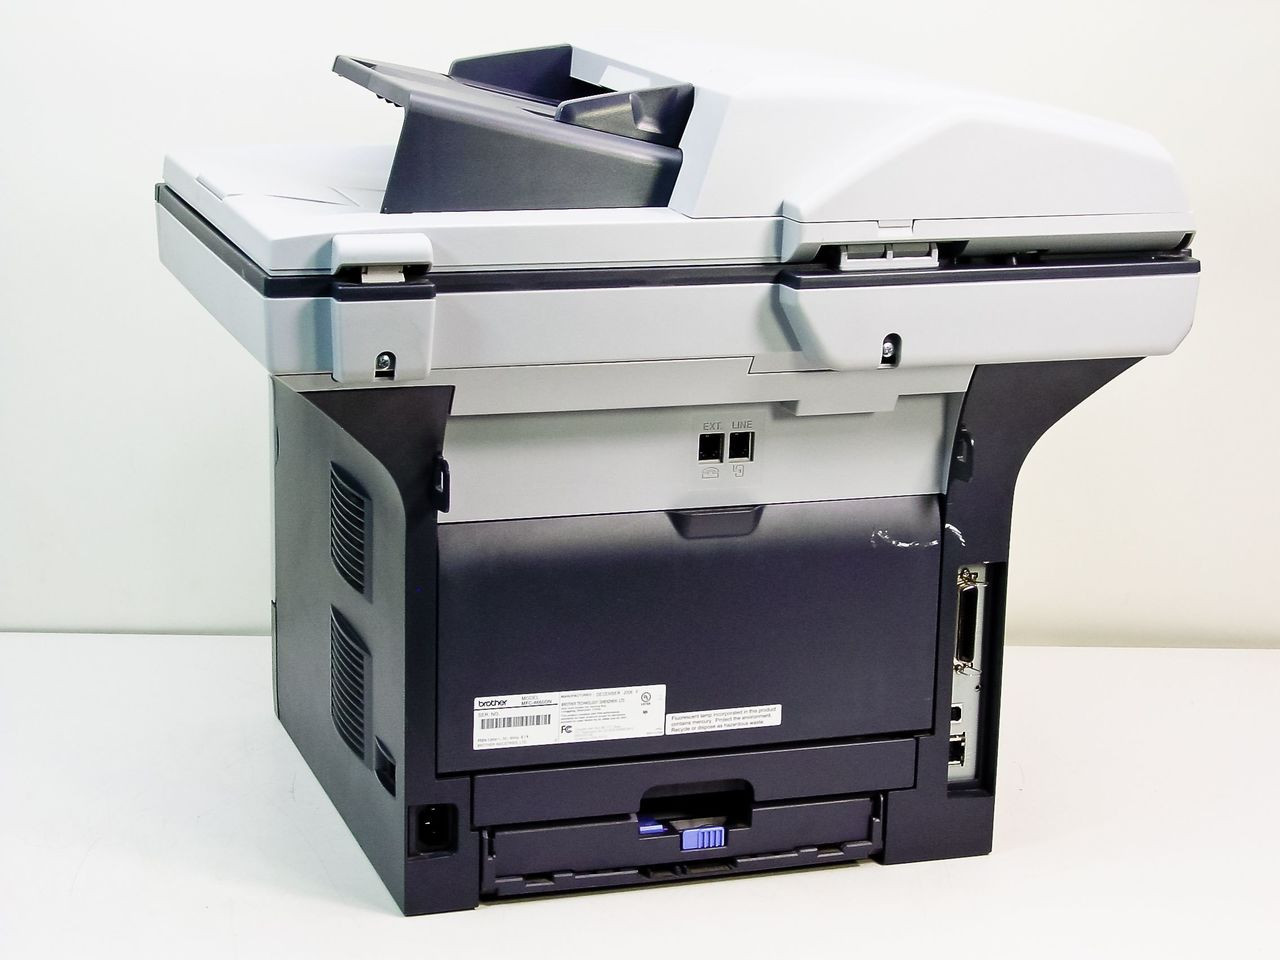 BROTHER MFC 8660DN SCANNER DRIVERS WINDOWS 7